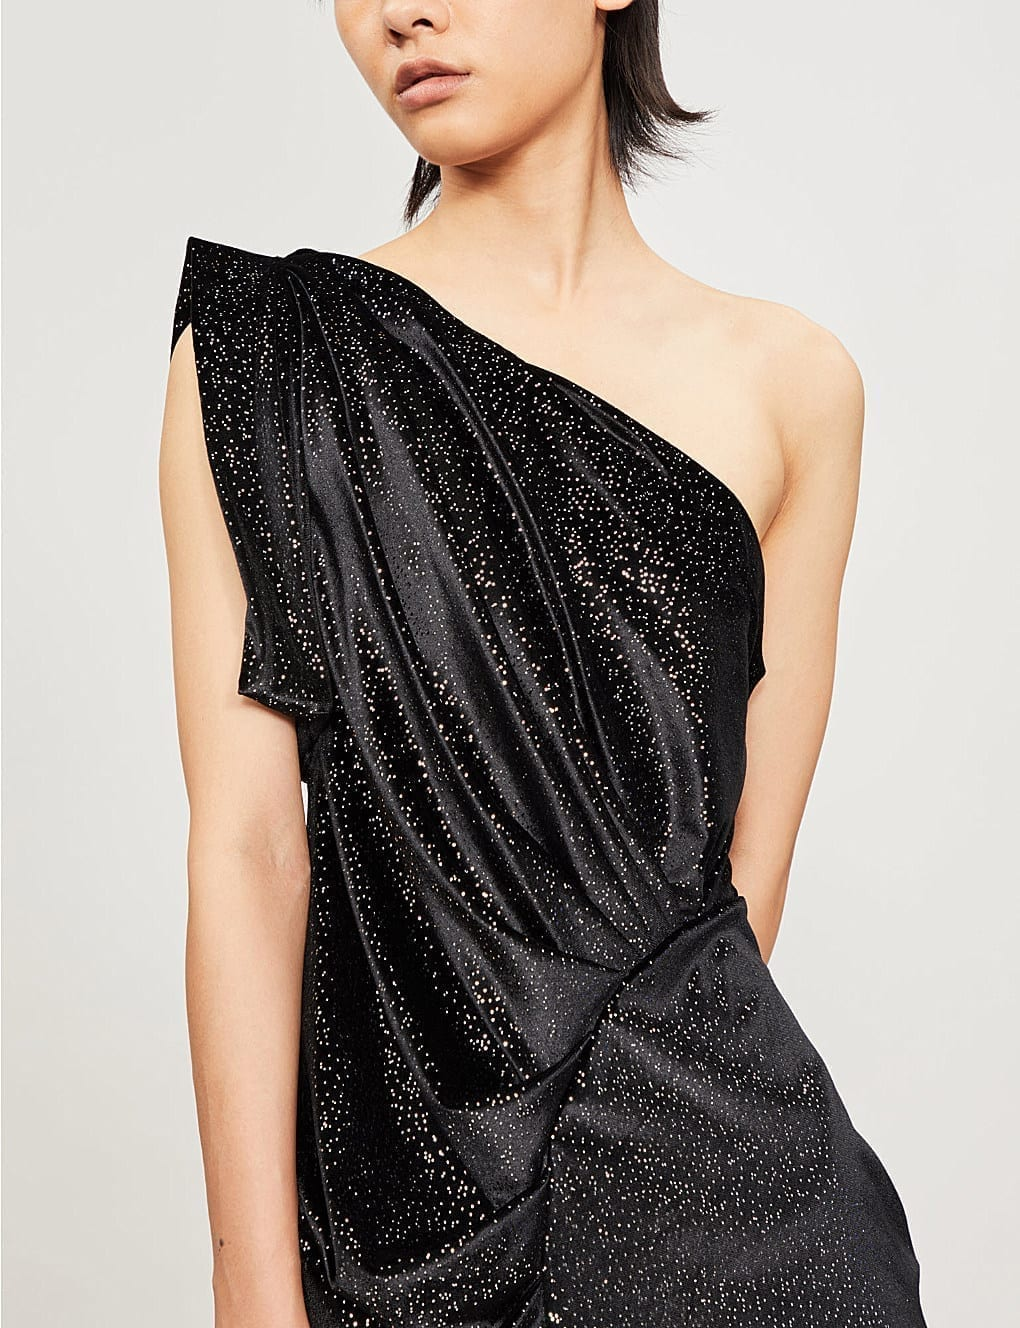 ATTICO One-Shoulder Metallic Velvet Mini Black Dress_4